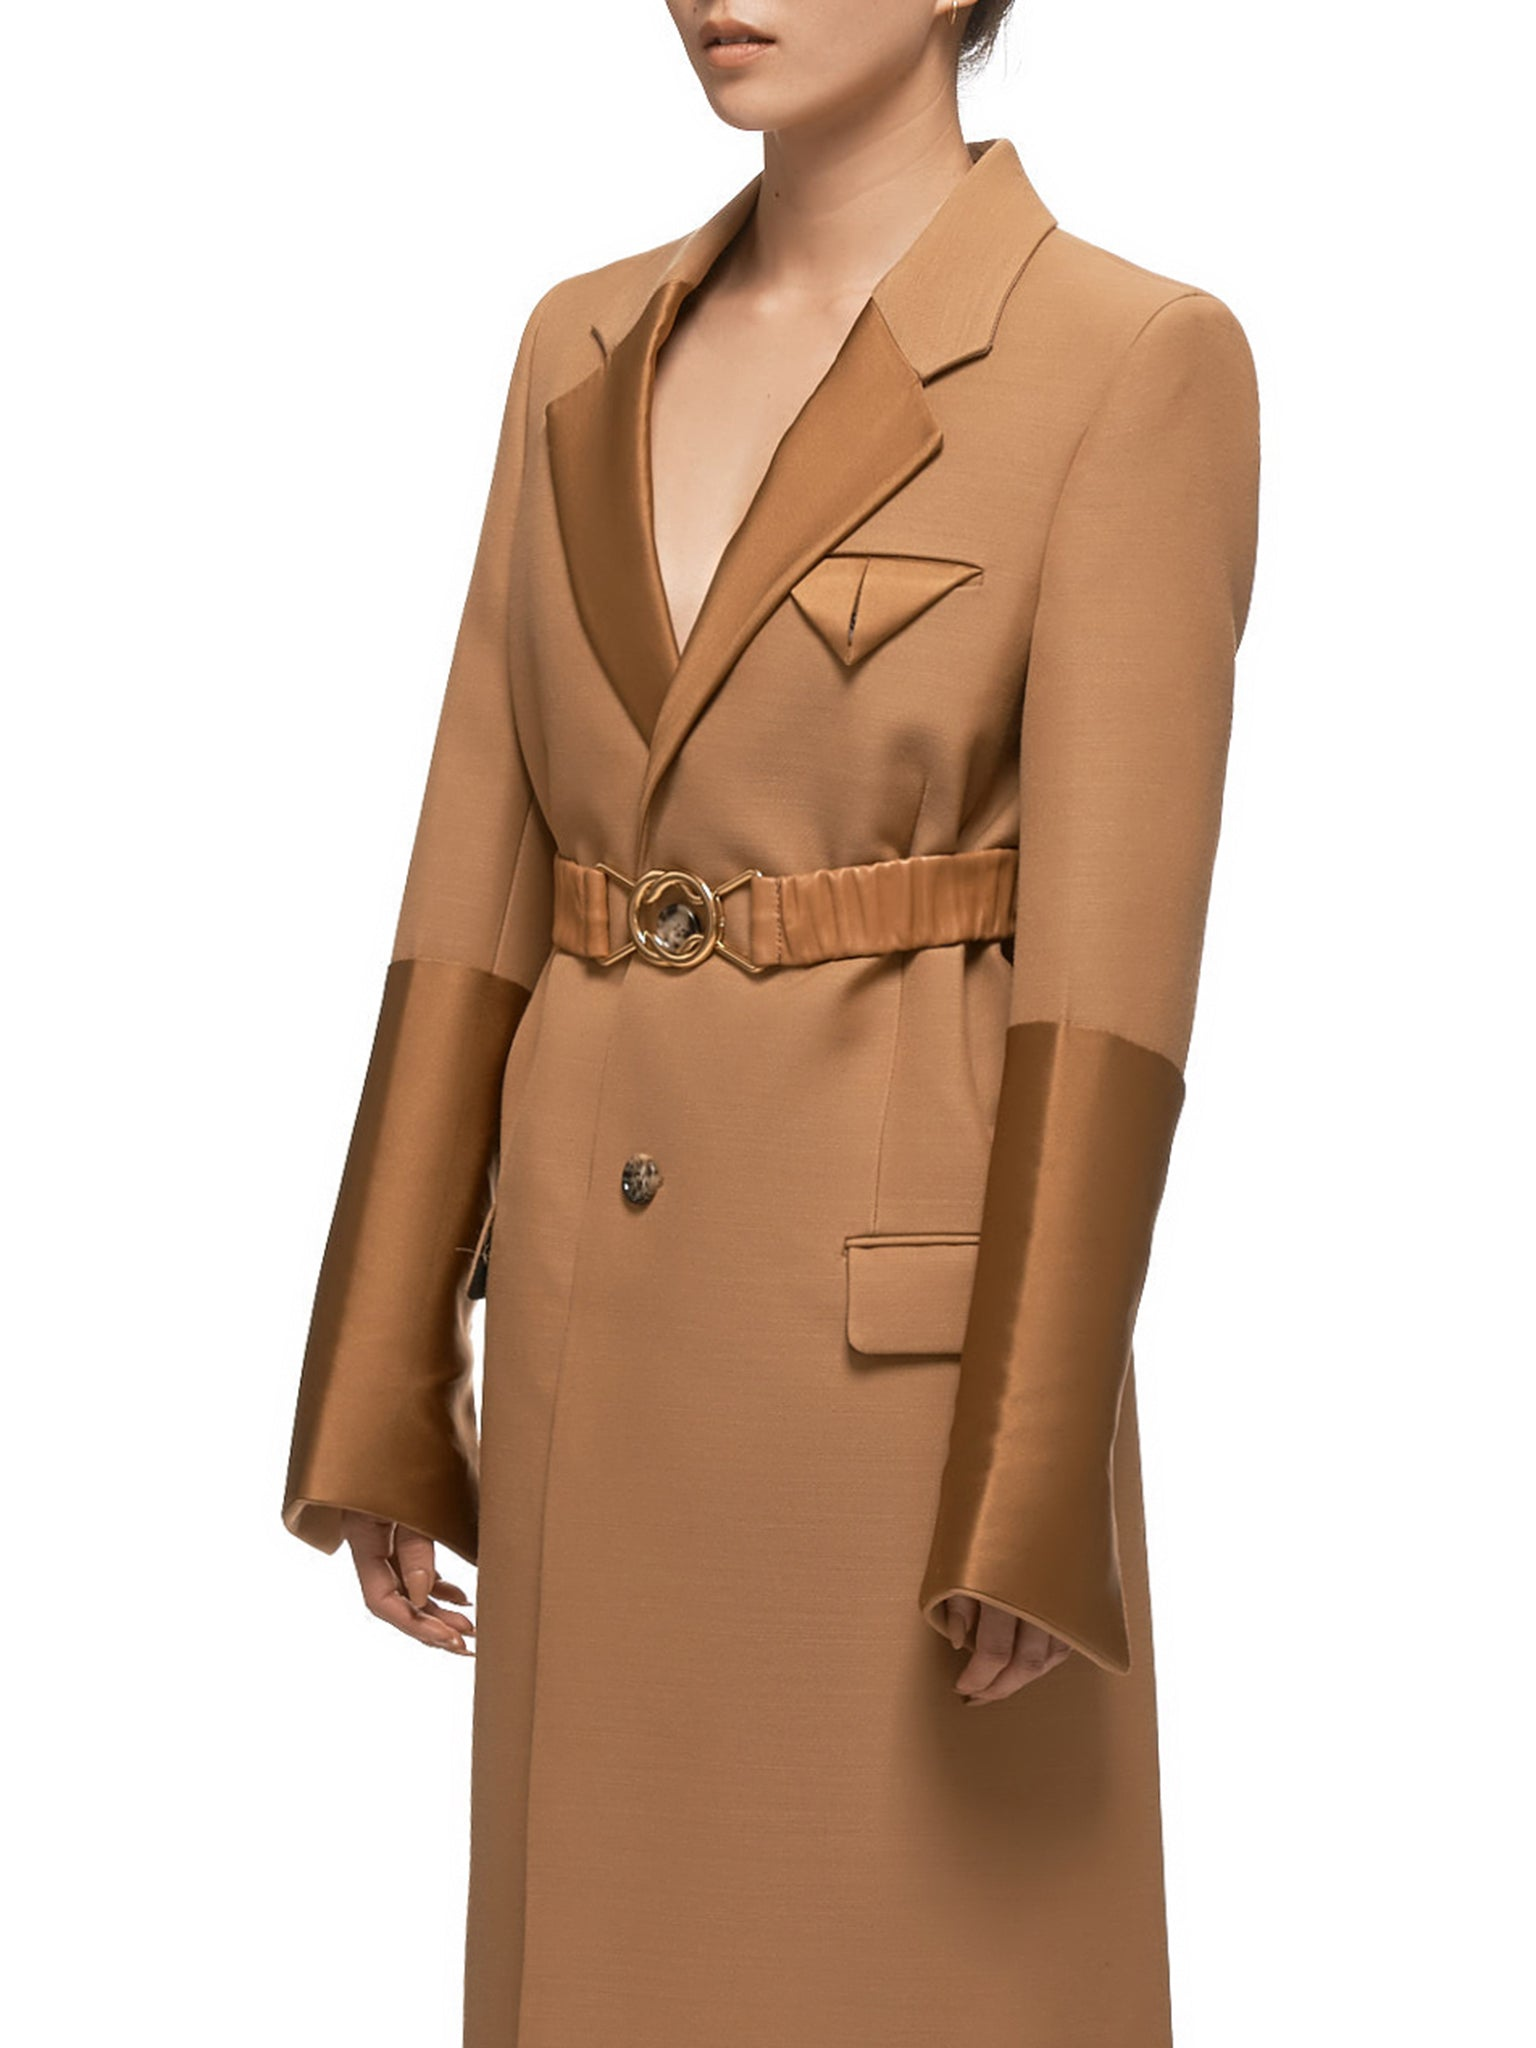 Bottega Veneta Coat - Hlorenzo Detail 1